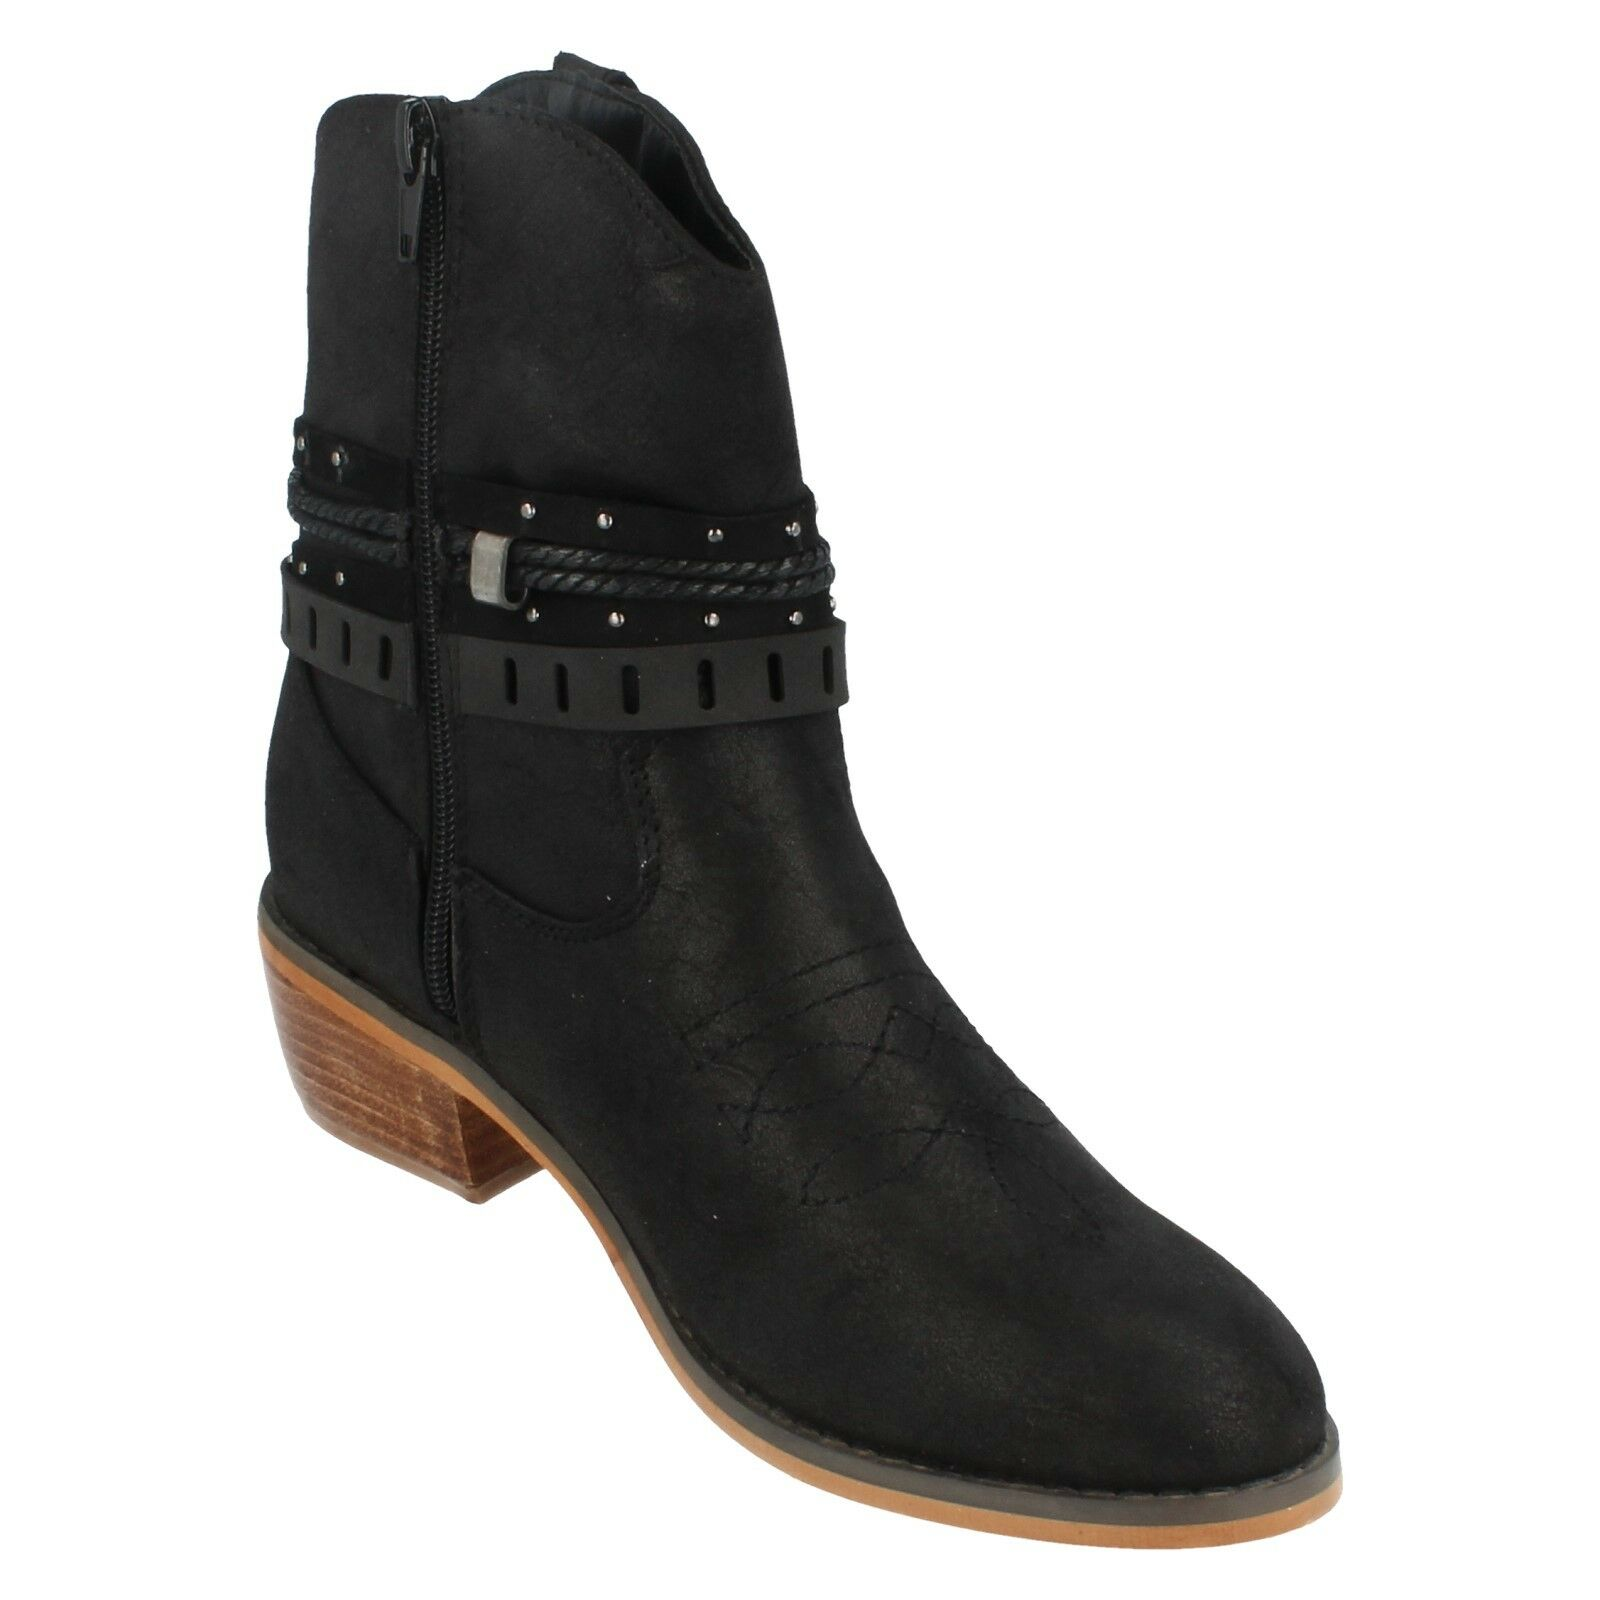 Ladies Ladies Ladies Down To Earth Cowboy Style Ankle Boot F5R0950 dce20f